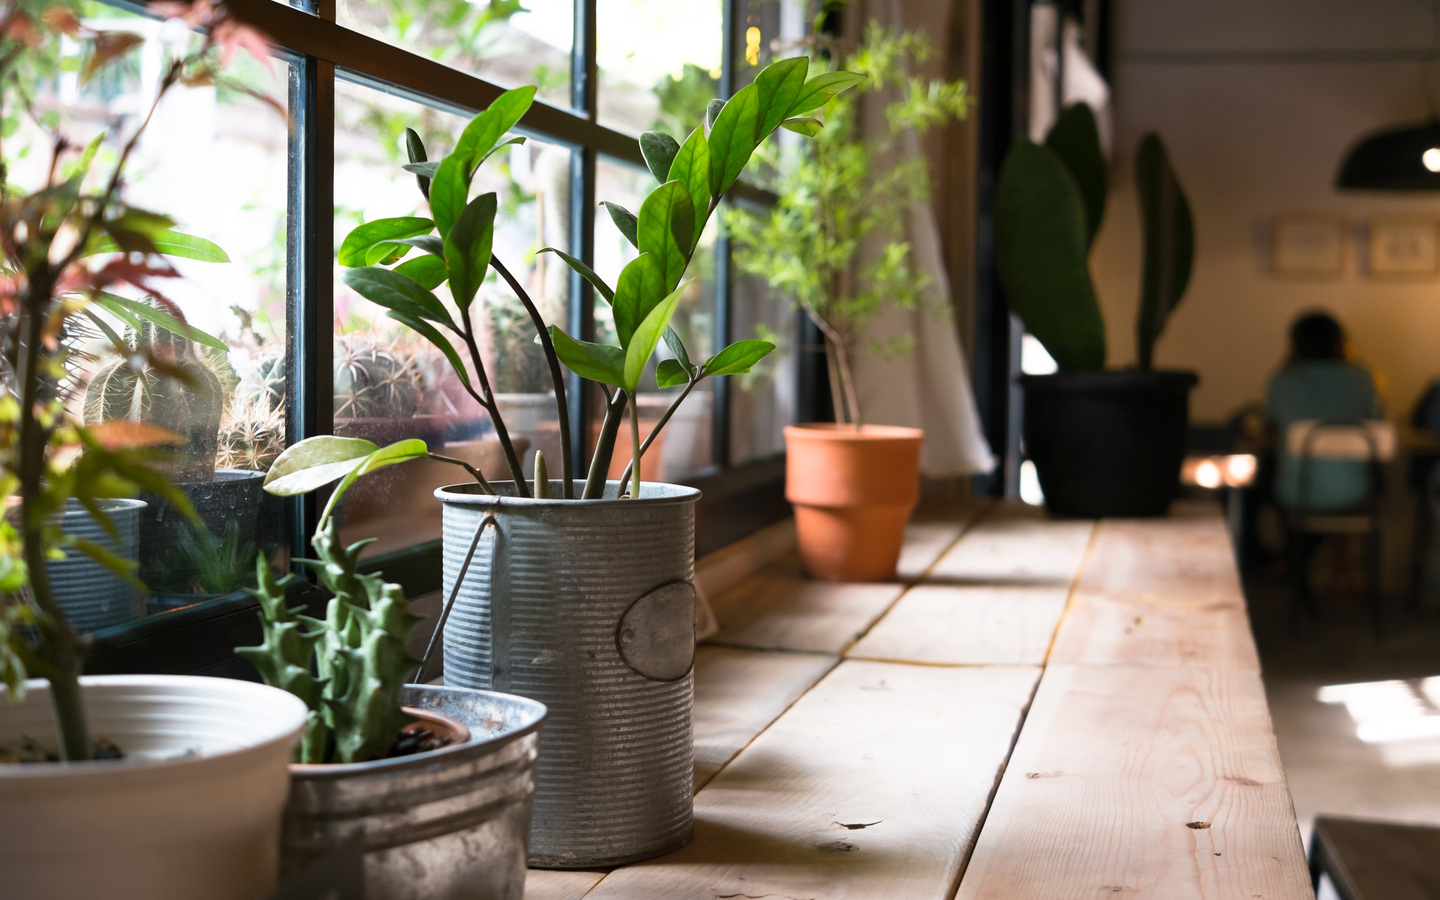 Increase the value of your home by keeping plants there.